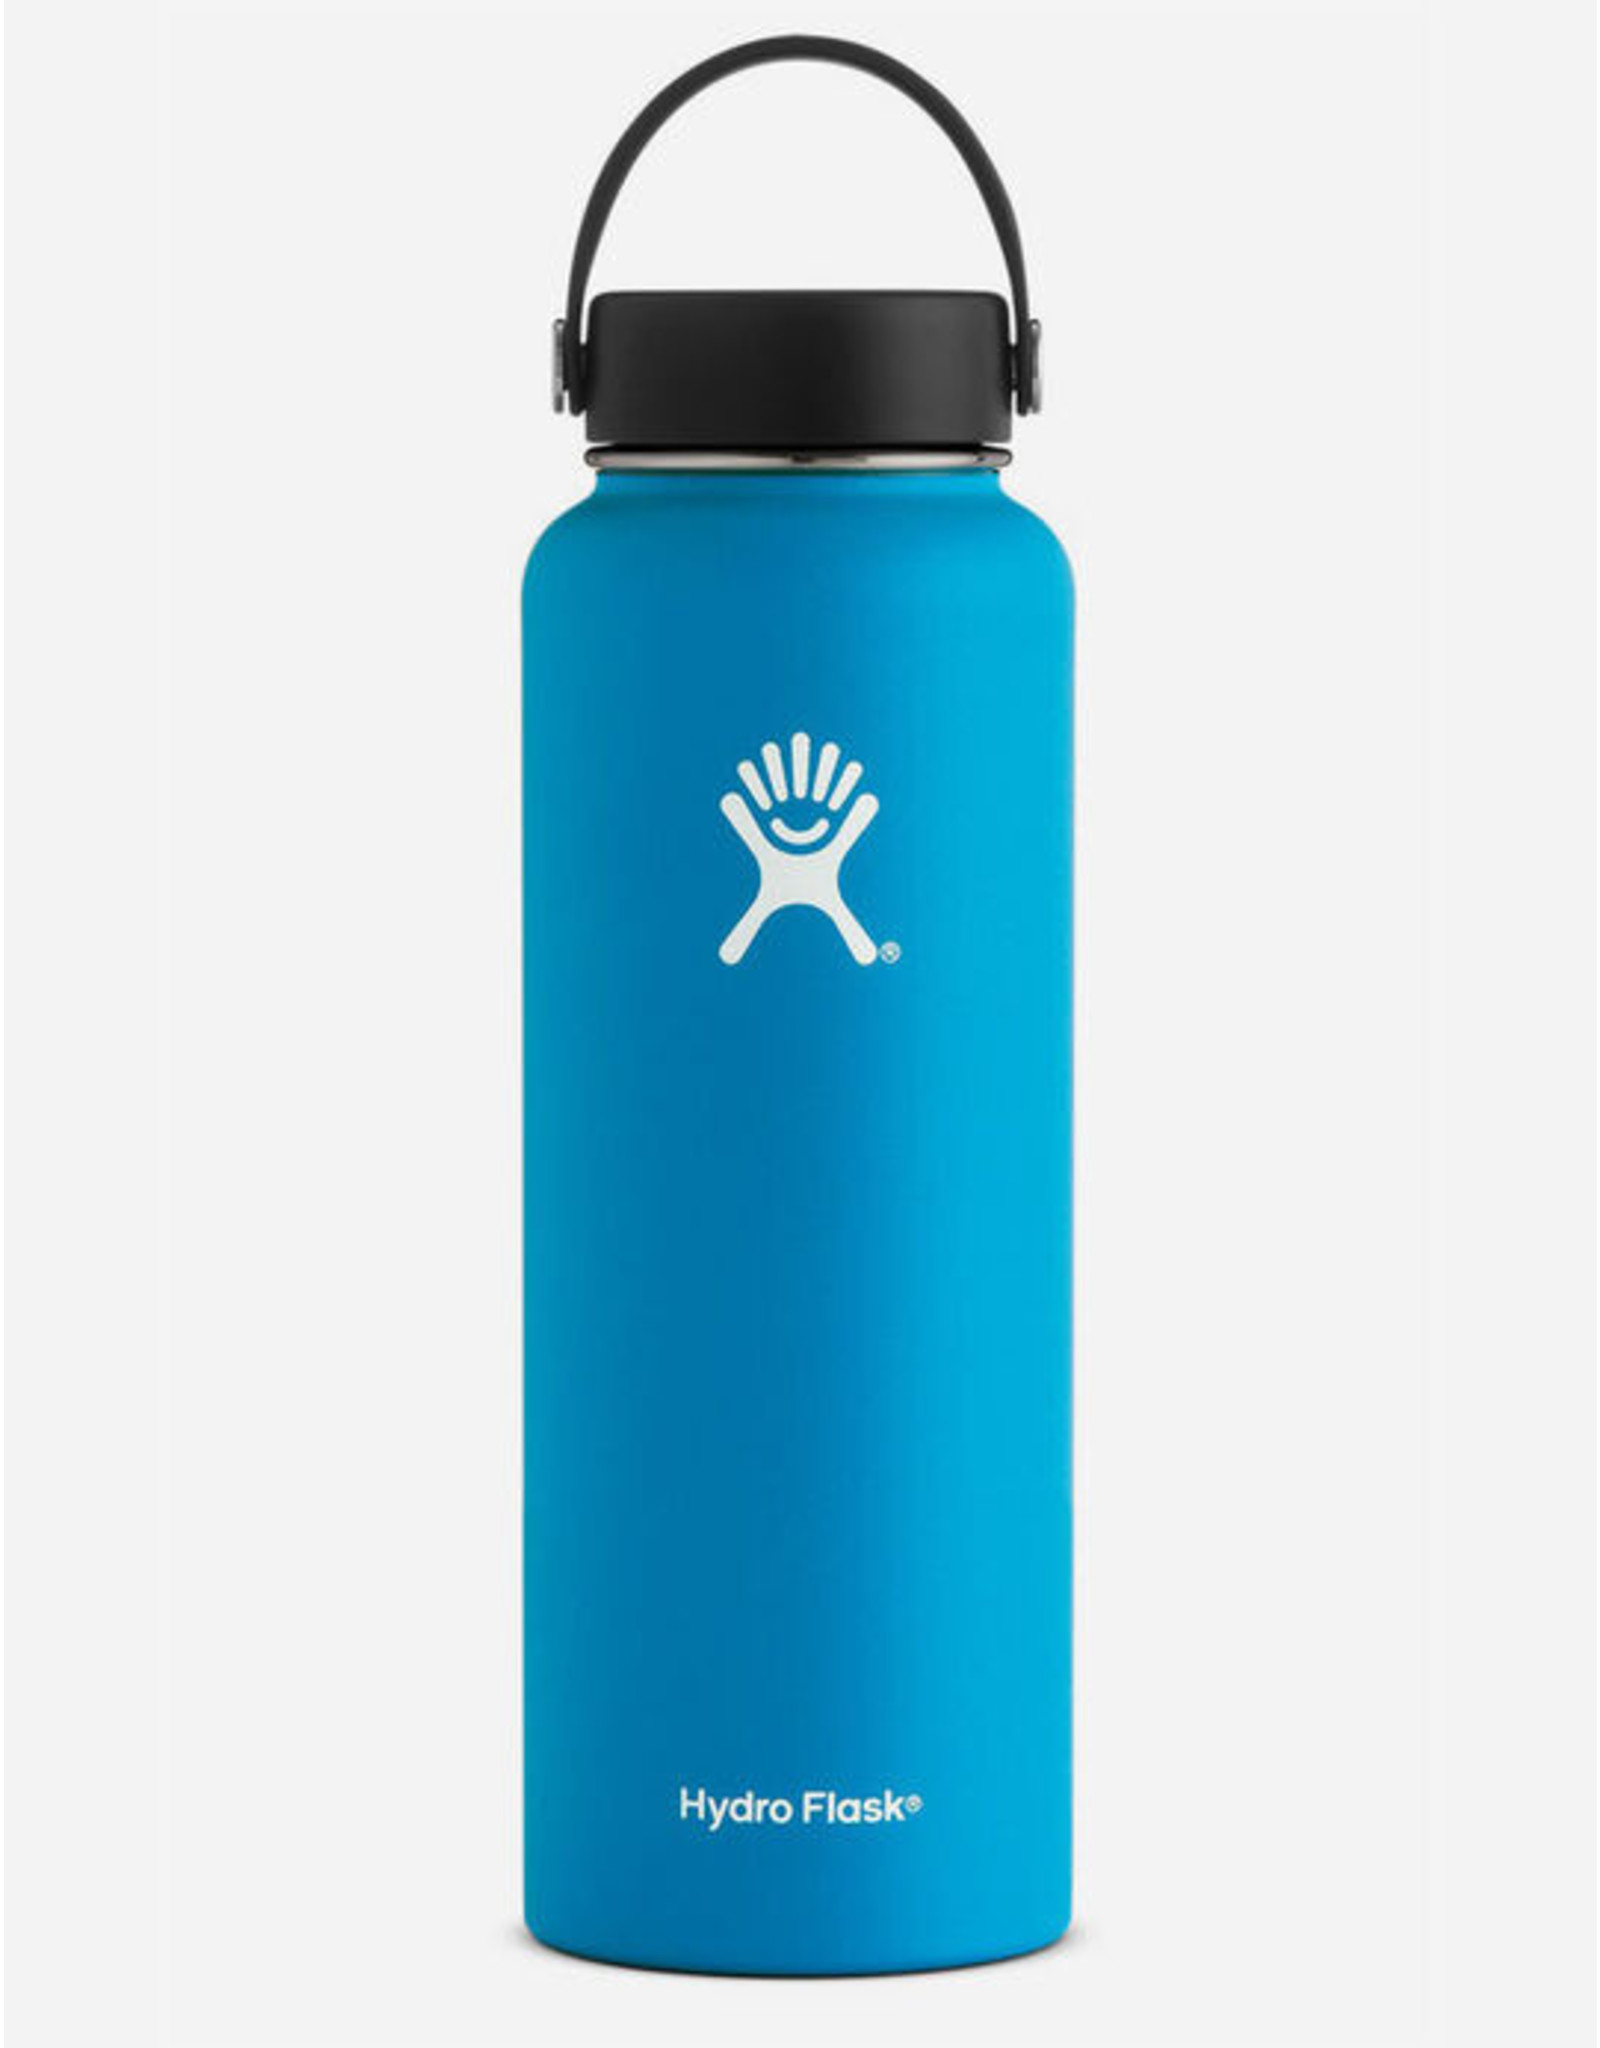 Hydro Flask Hydro Flask - 40 OZ. WIDE MOUTH